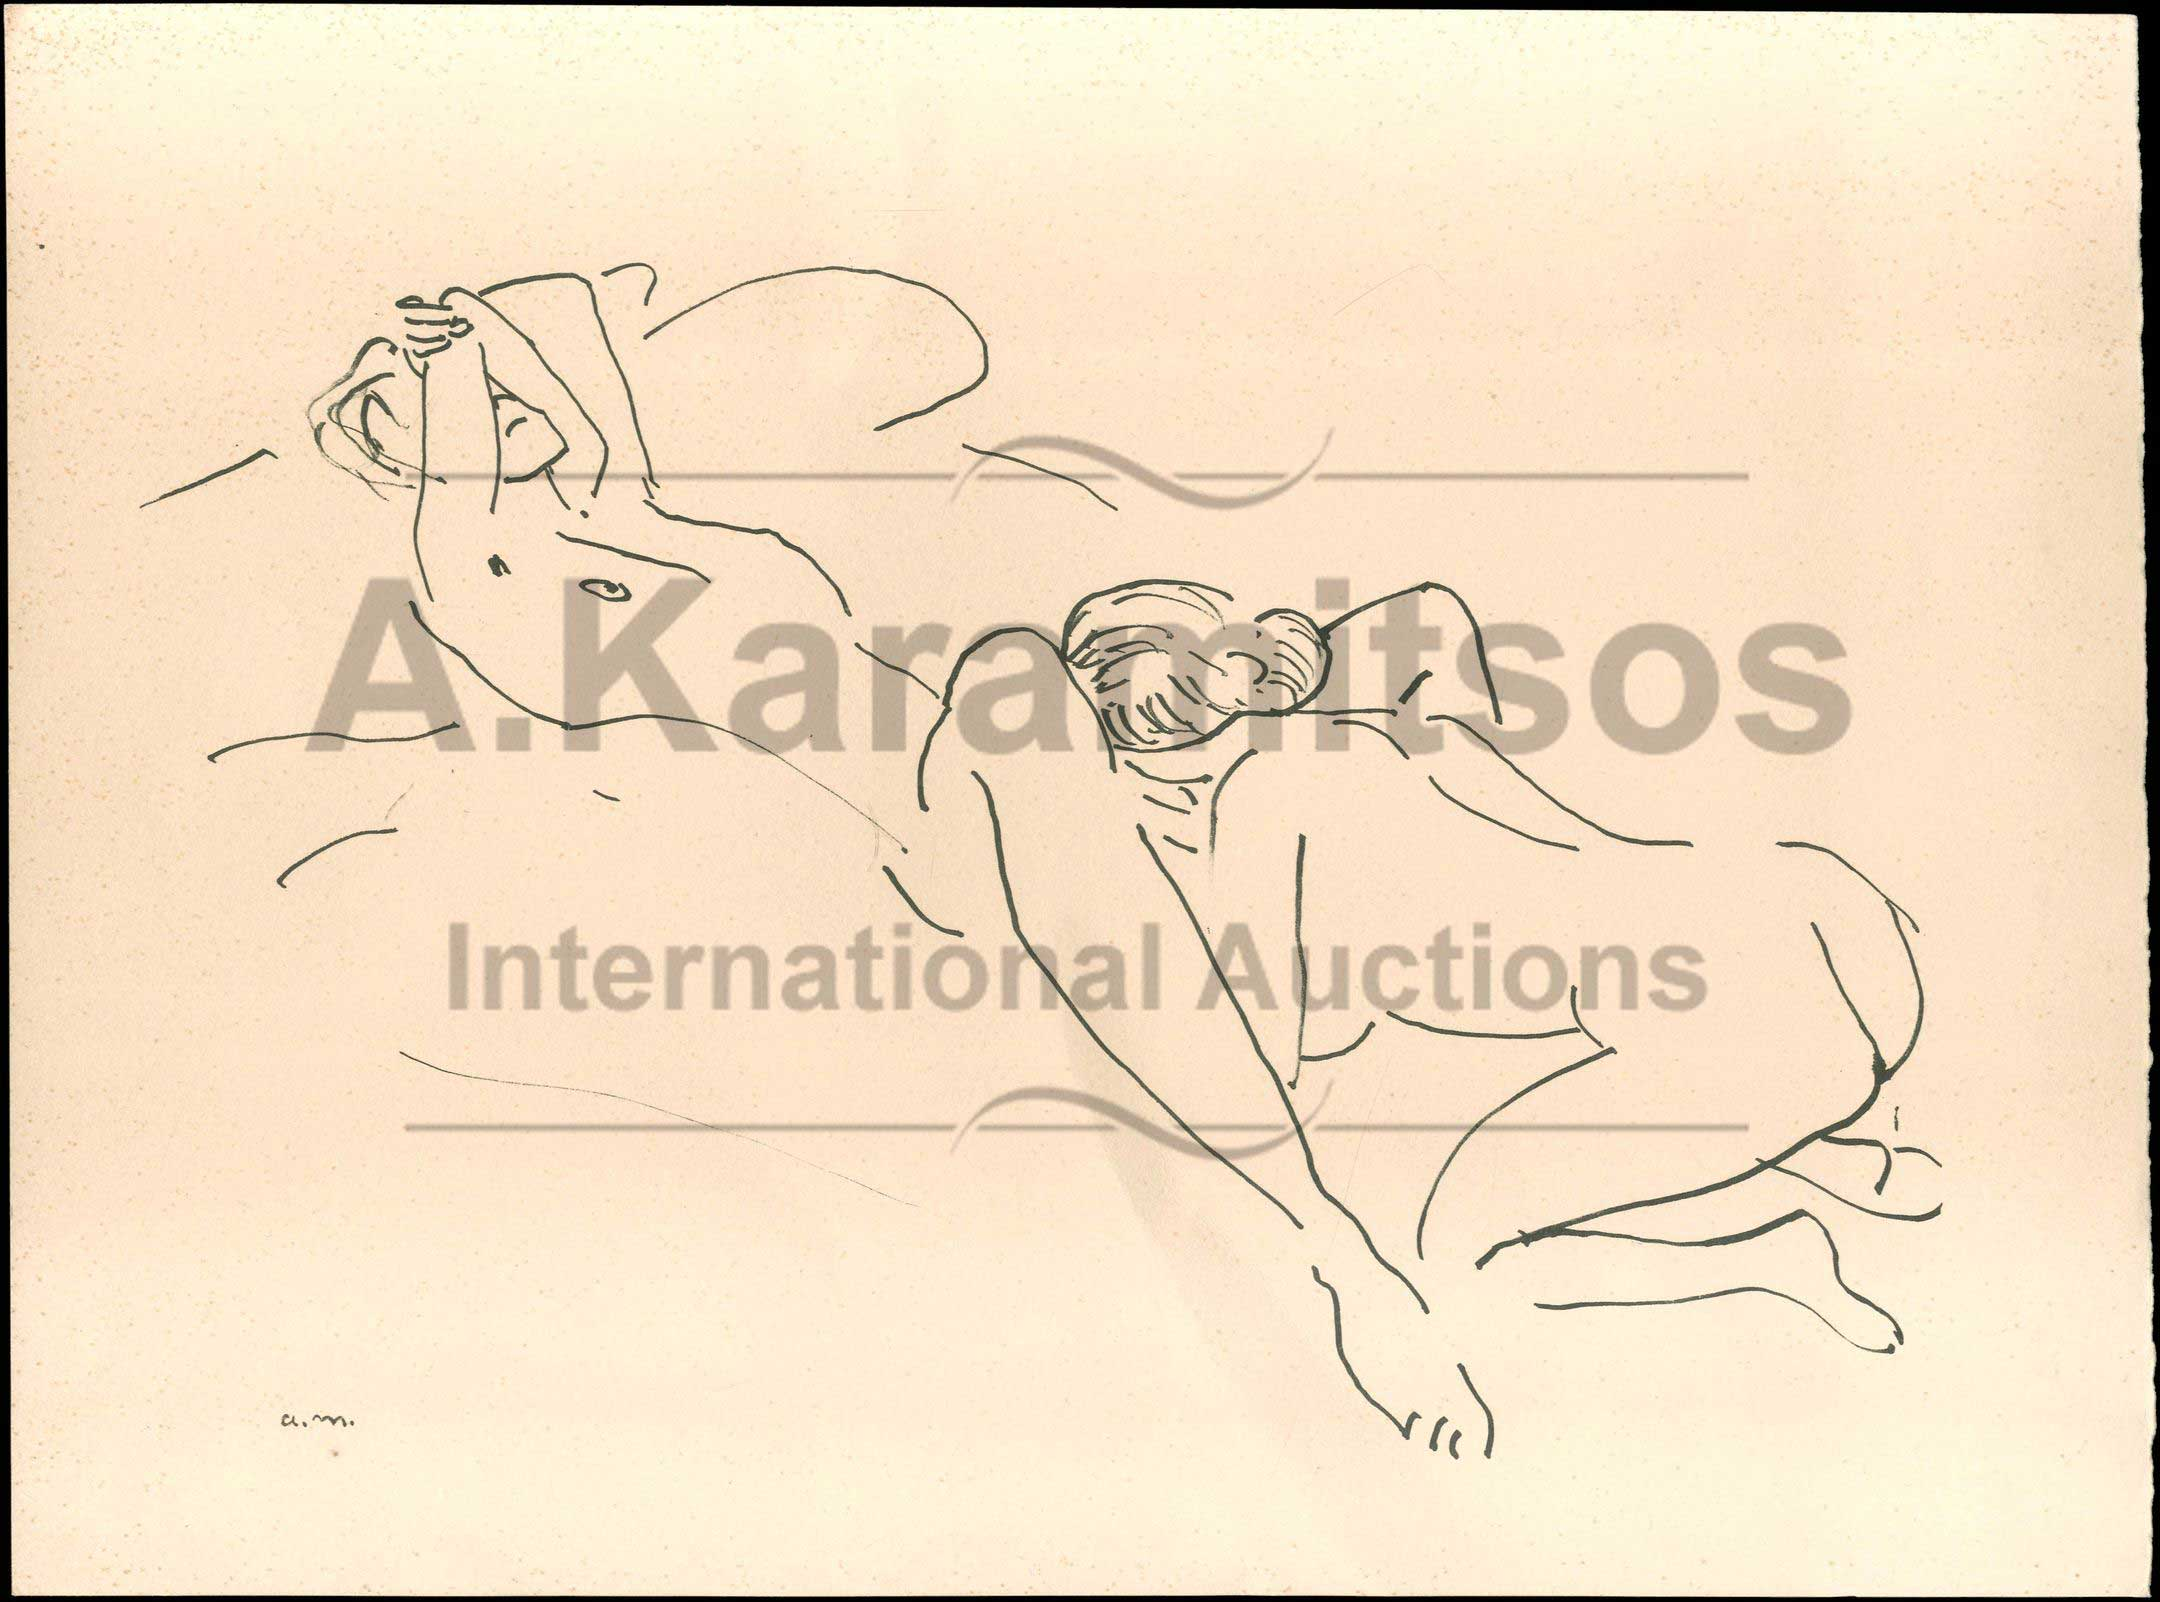 Quelle: A. Karamitsos International Philatelic Auctions